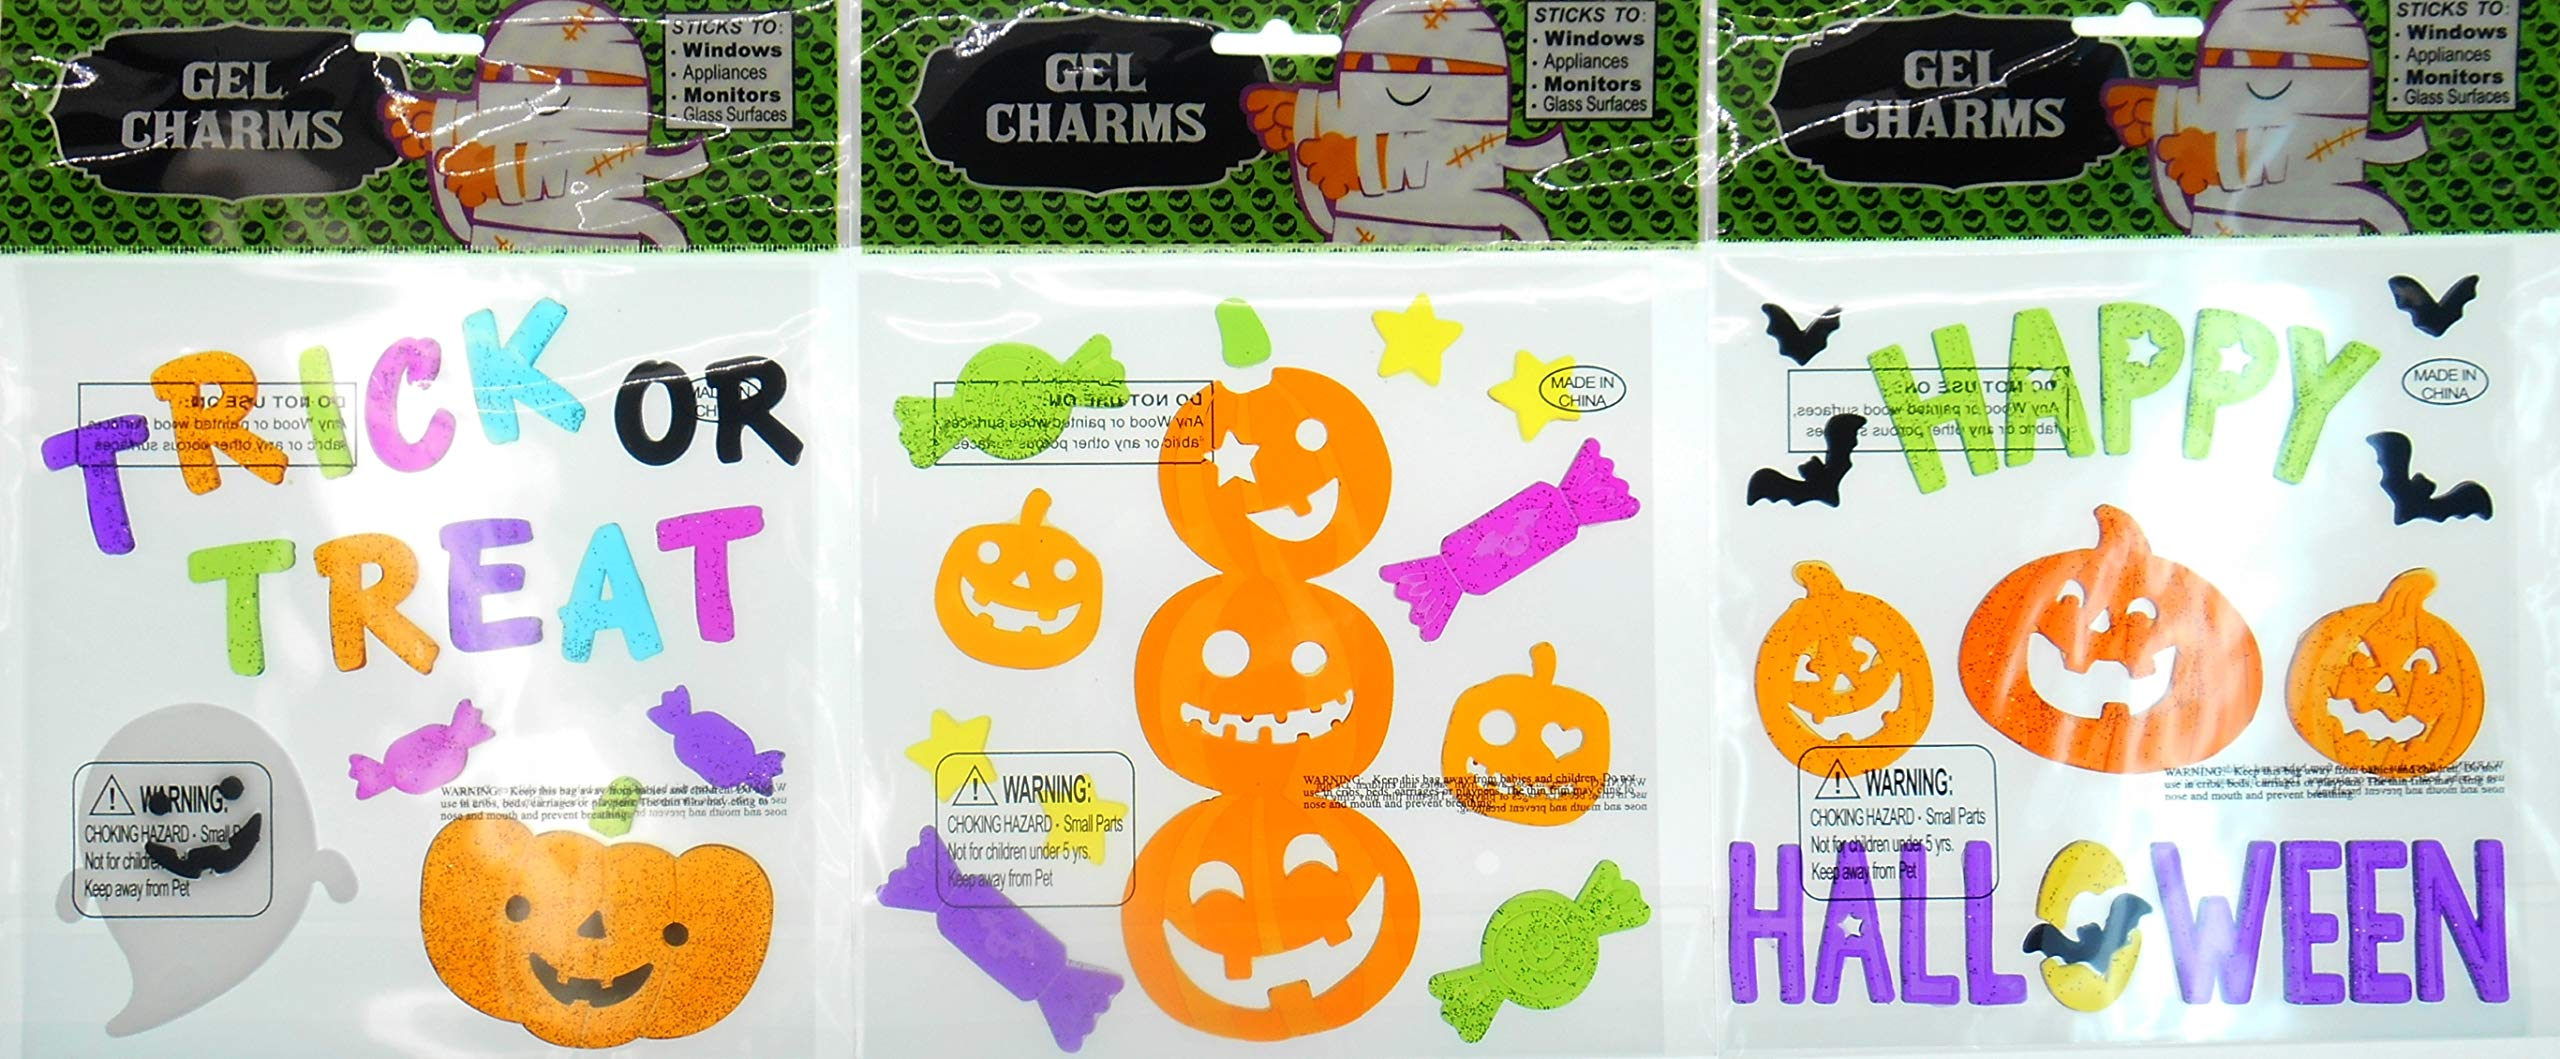 Halloween Decorations Window Gel Clings - Happy Halloween, Trick or Treat, a 3 Pumpkin Jack O Lantern with Candies - Bundle of 3